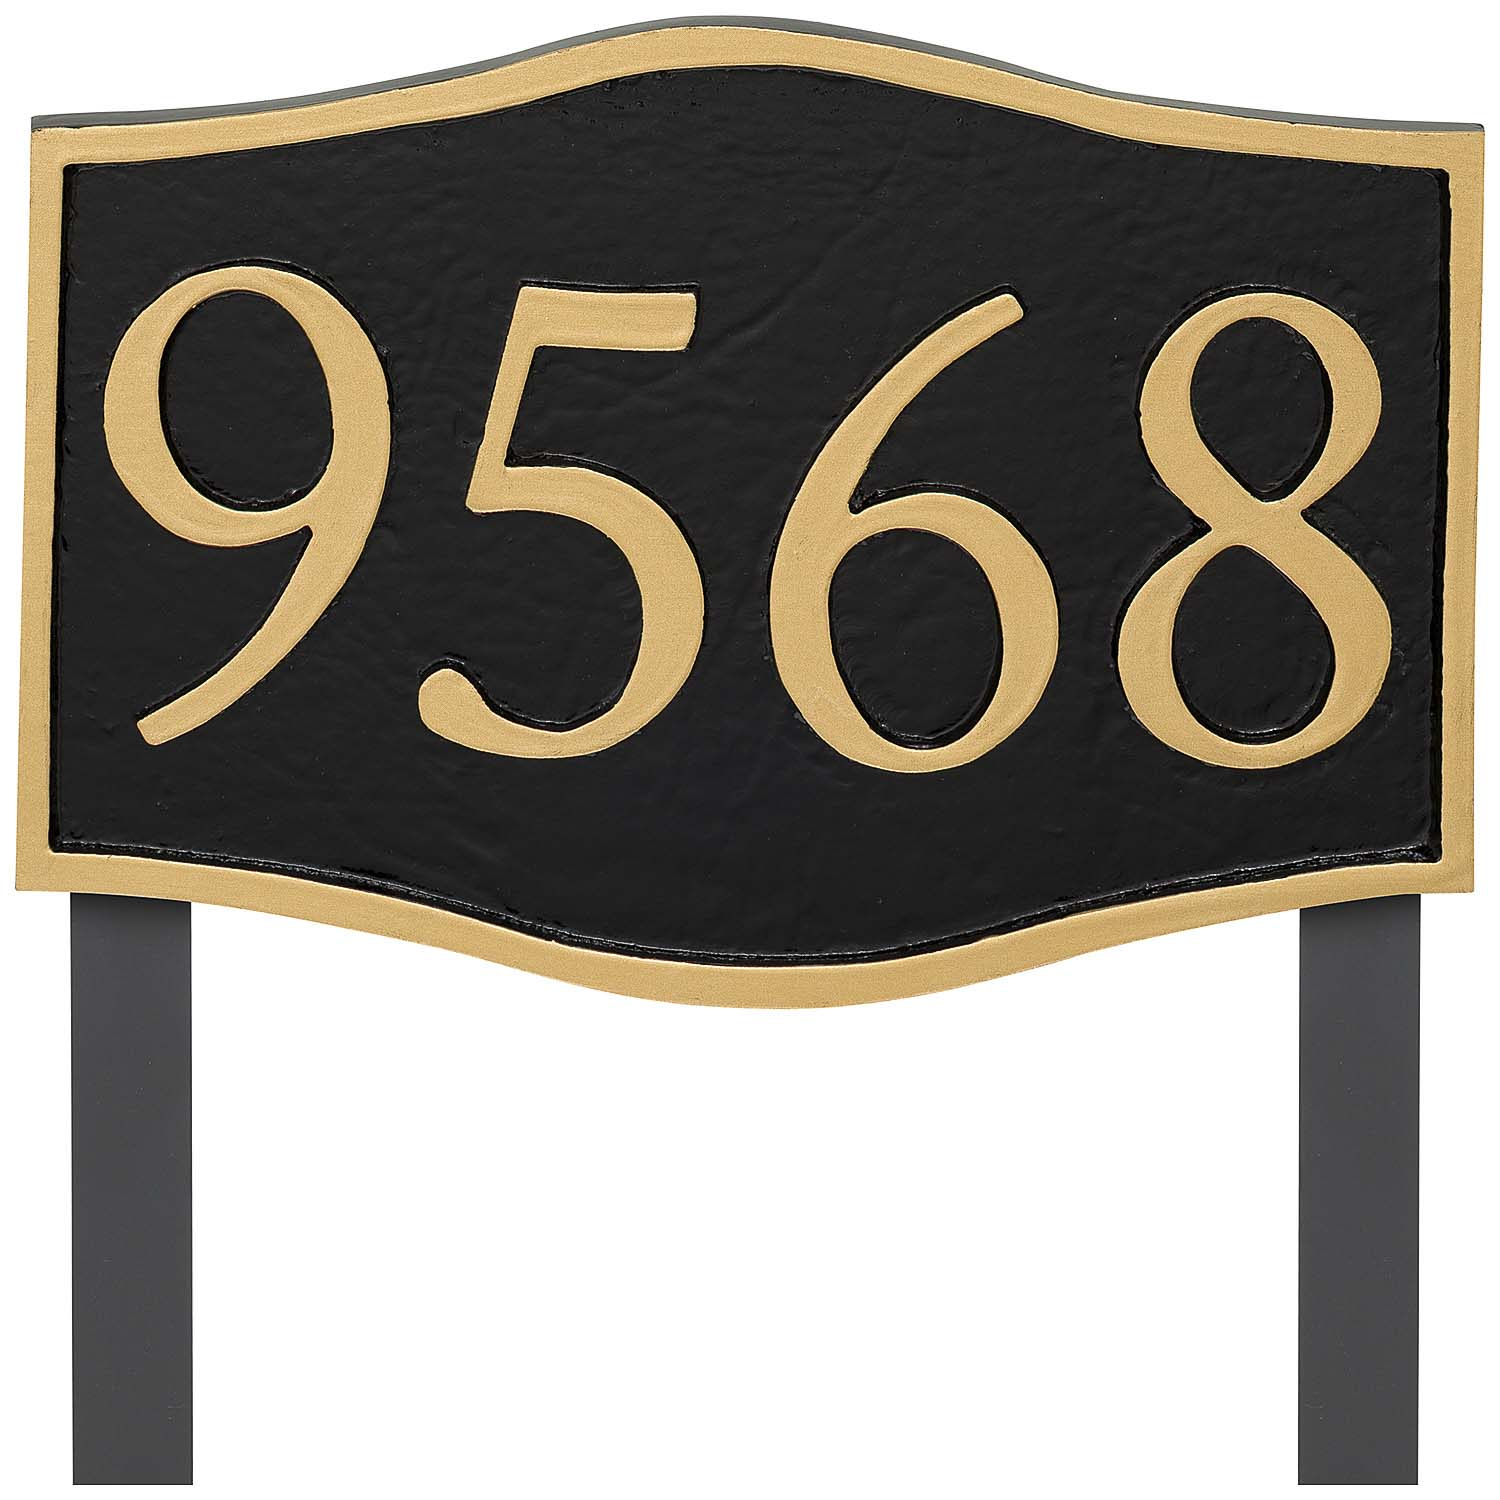 Double Arch Serif Economy Address Plaque (holds up to 4 characters)